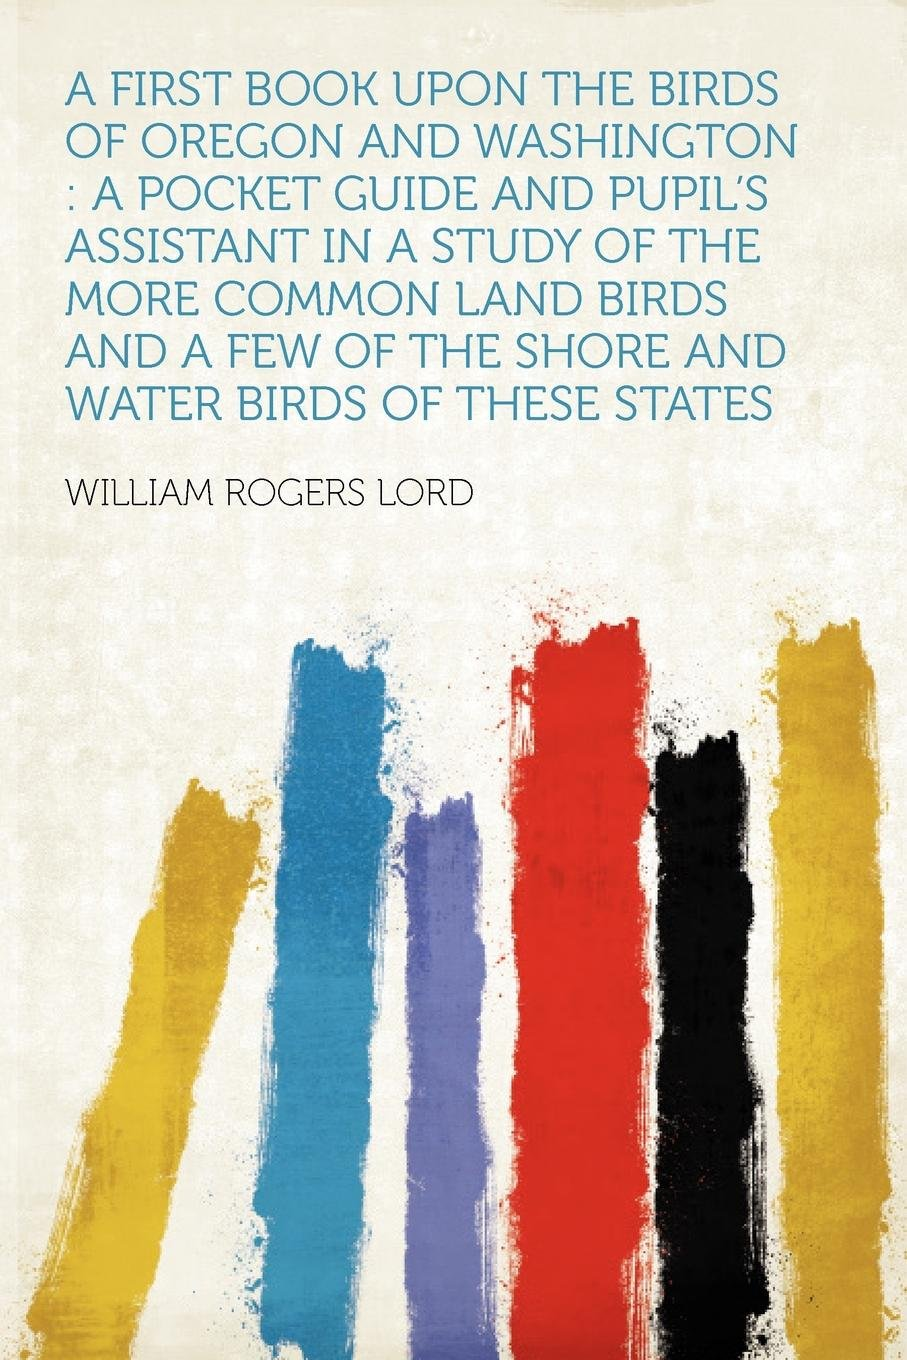 A First Book Upon the Birds of Oregon and Washington: a Pocket Guide and Pupil's Assistant in a Study of the More Common Land Birds and a Few of the Shore and Water Birds of These States pdf epub